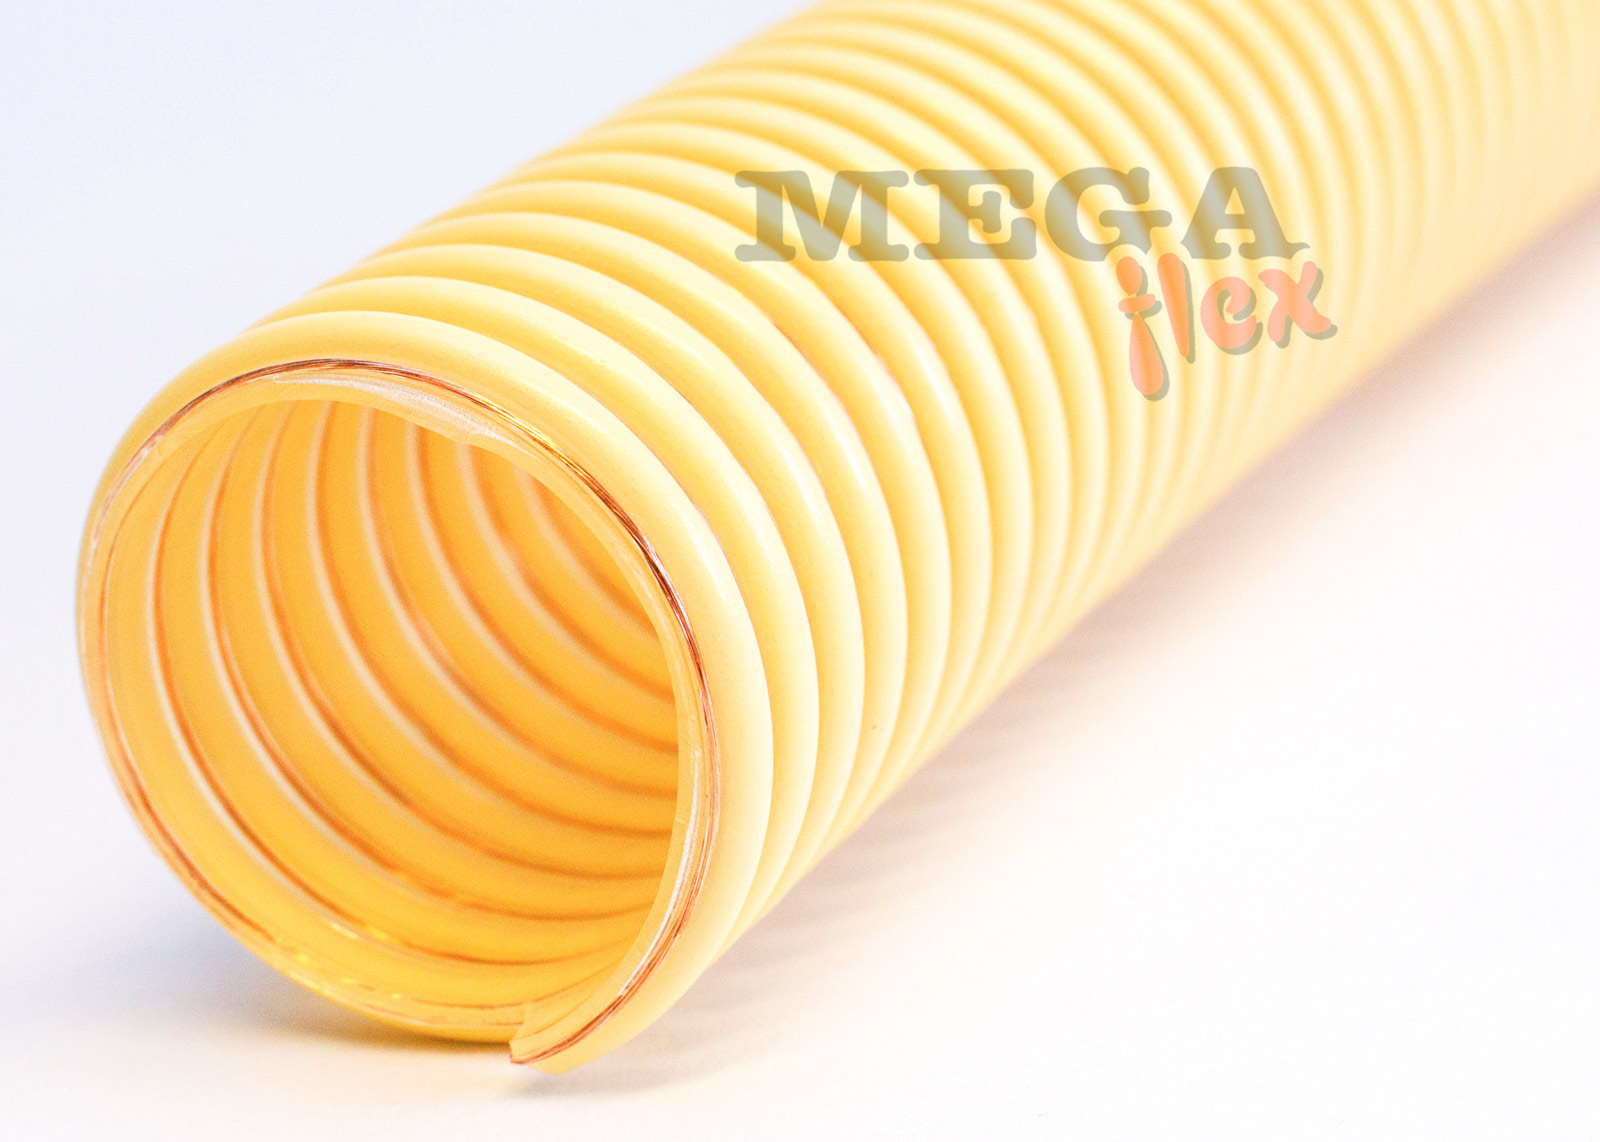 Zeus PU Food AS - Antistatic Ether Polyurethane Ducting Reinforced with Rigid PVC Helix (Heavy Duty)